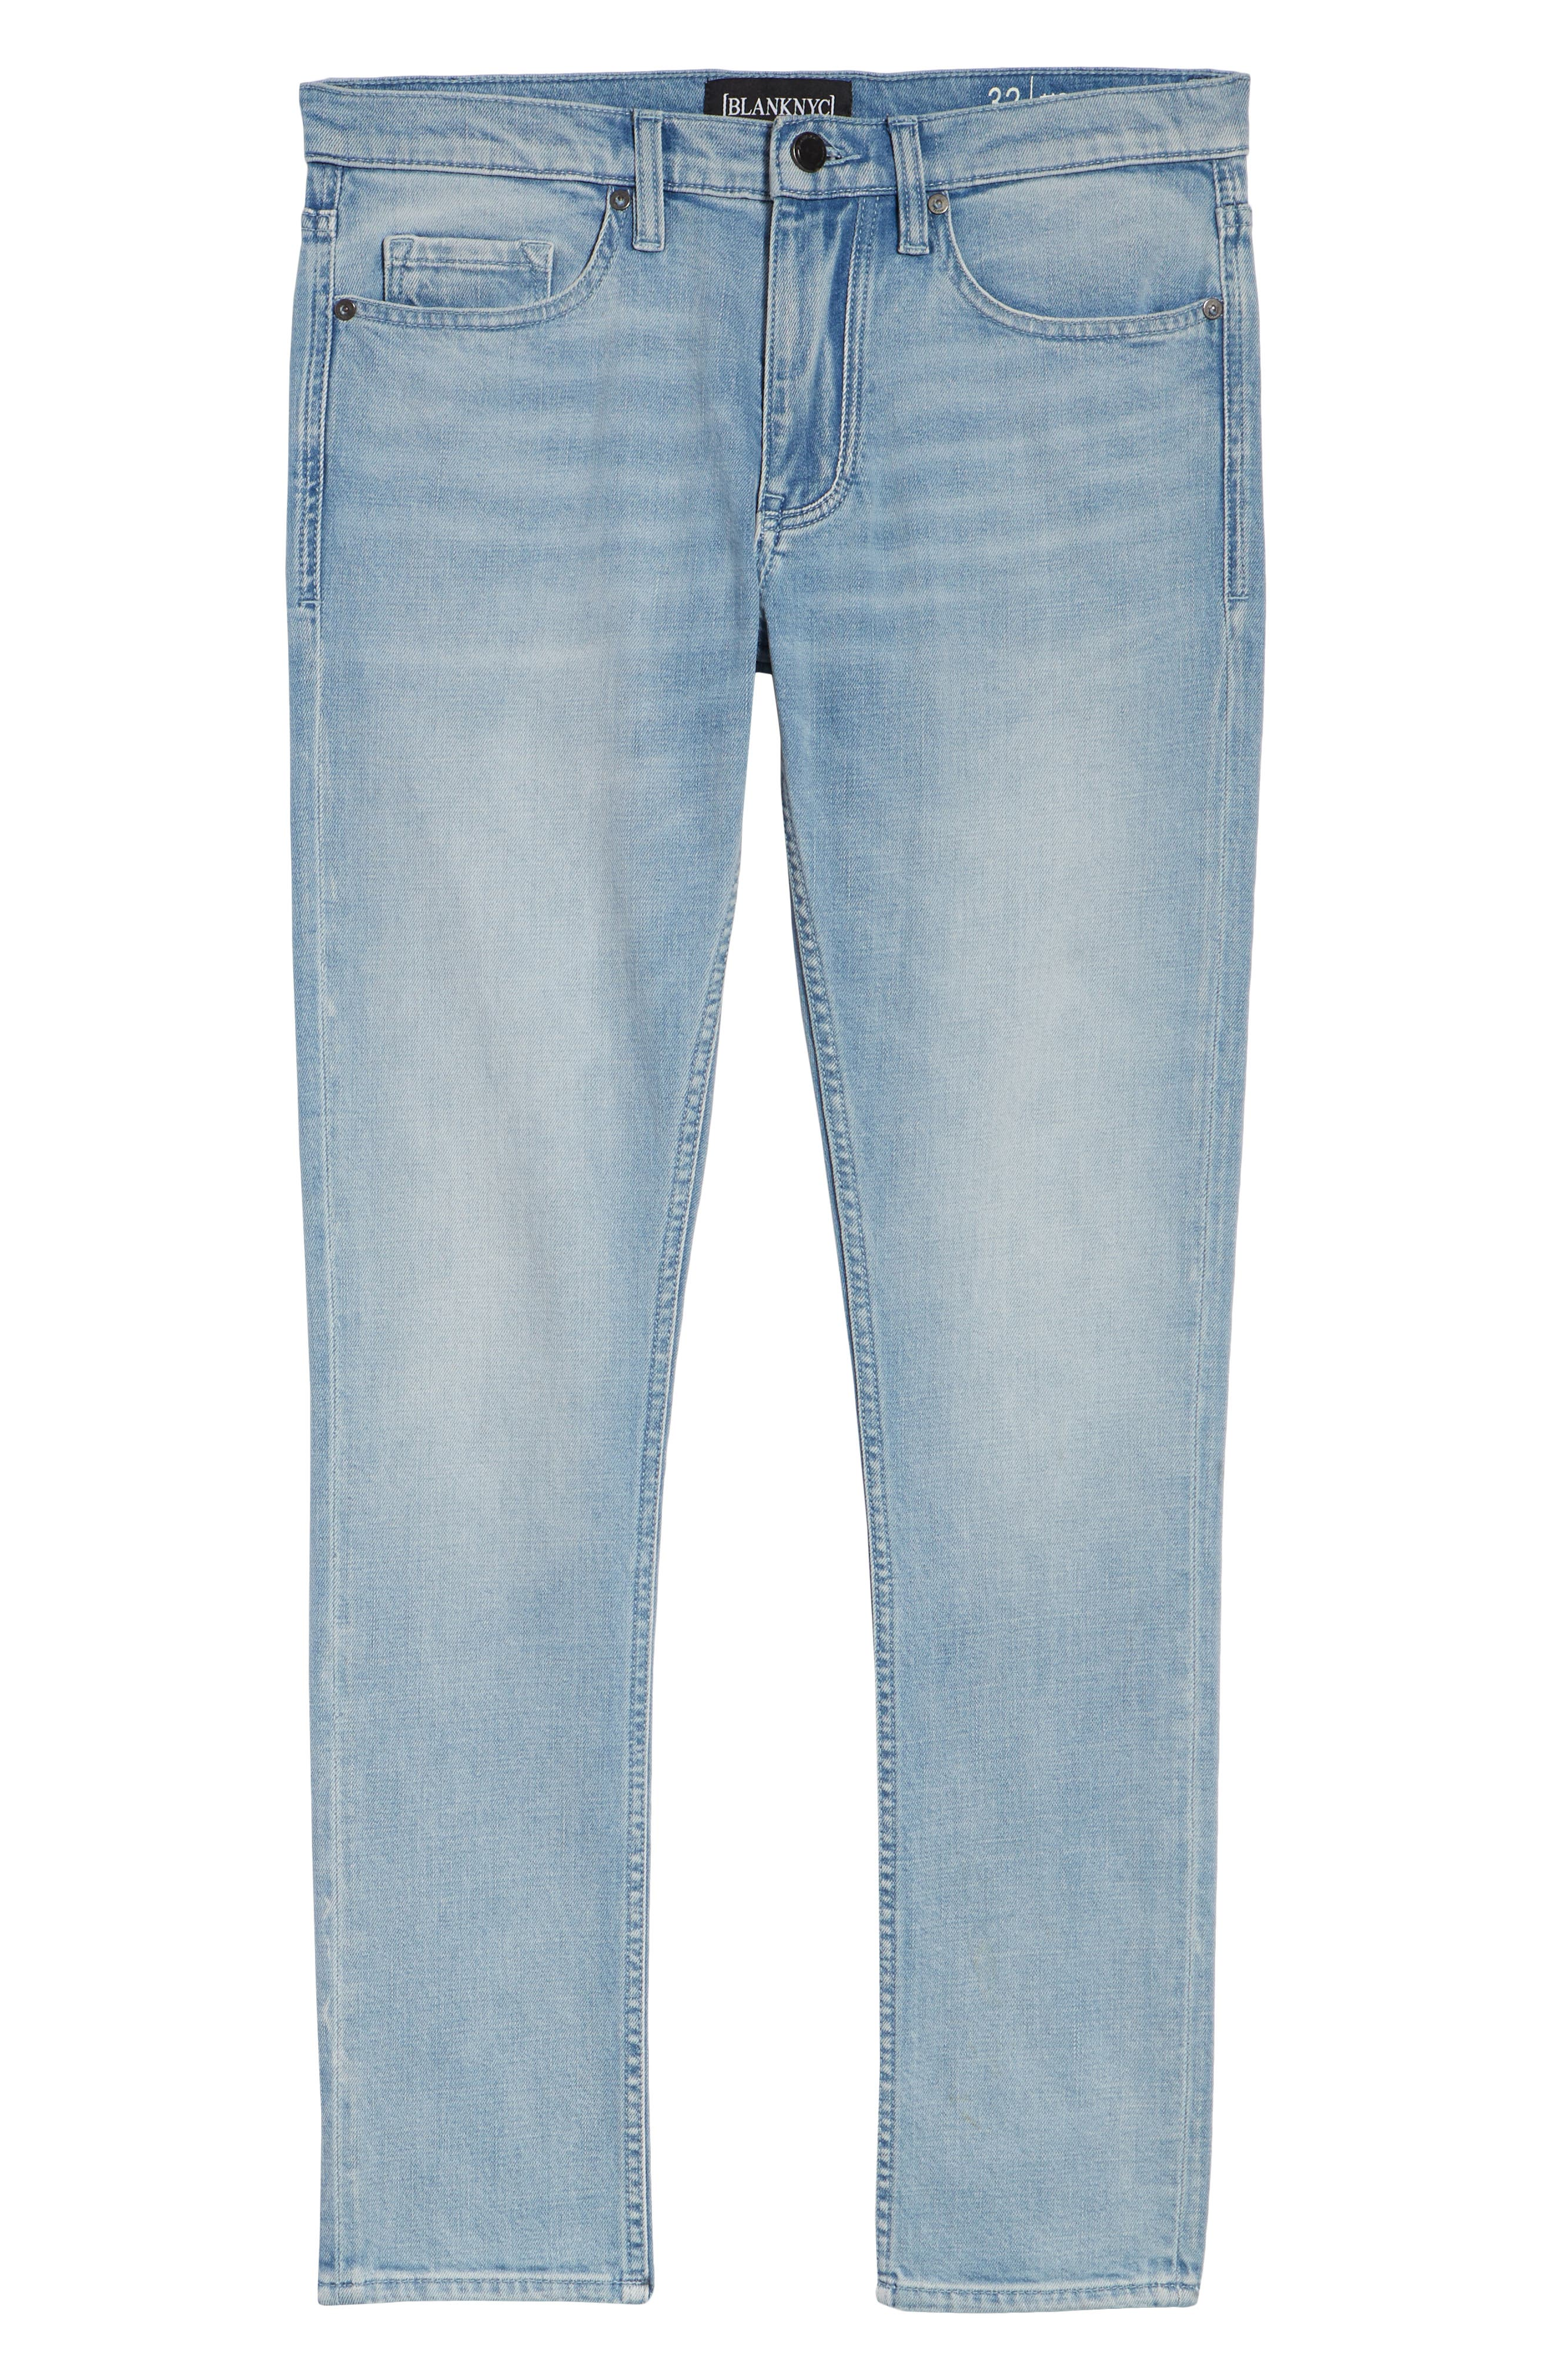 Horatio Skinny Fit Jeans,                             Alternate thumbnail 6, color,                             450